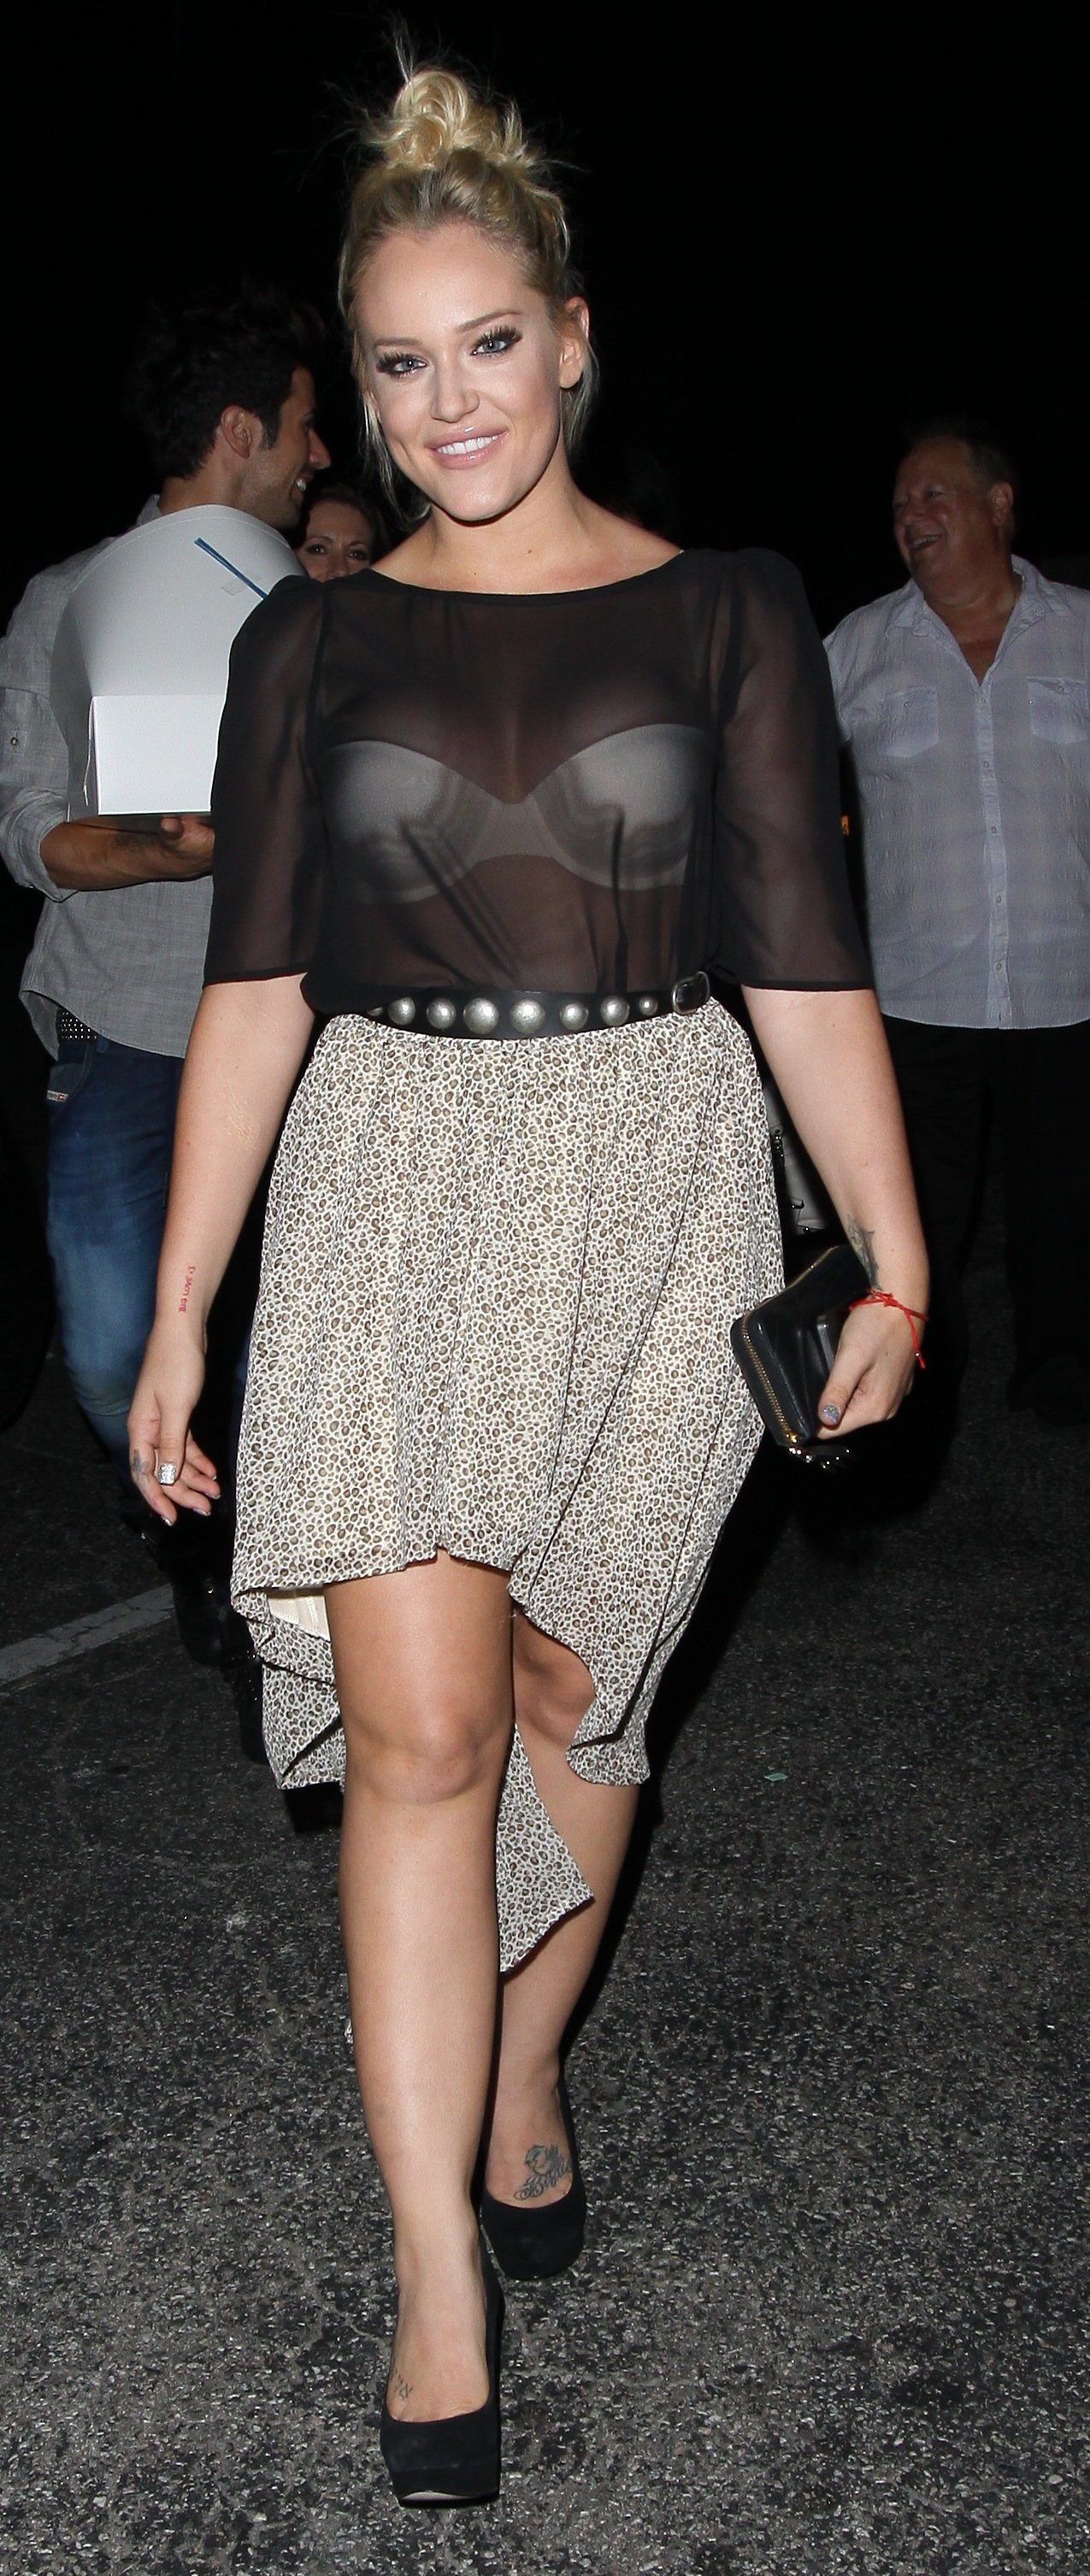 Lacey Schwimmer and Chaz Bono arriving at Gyu-Kaku in West Hollywood